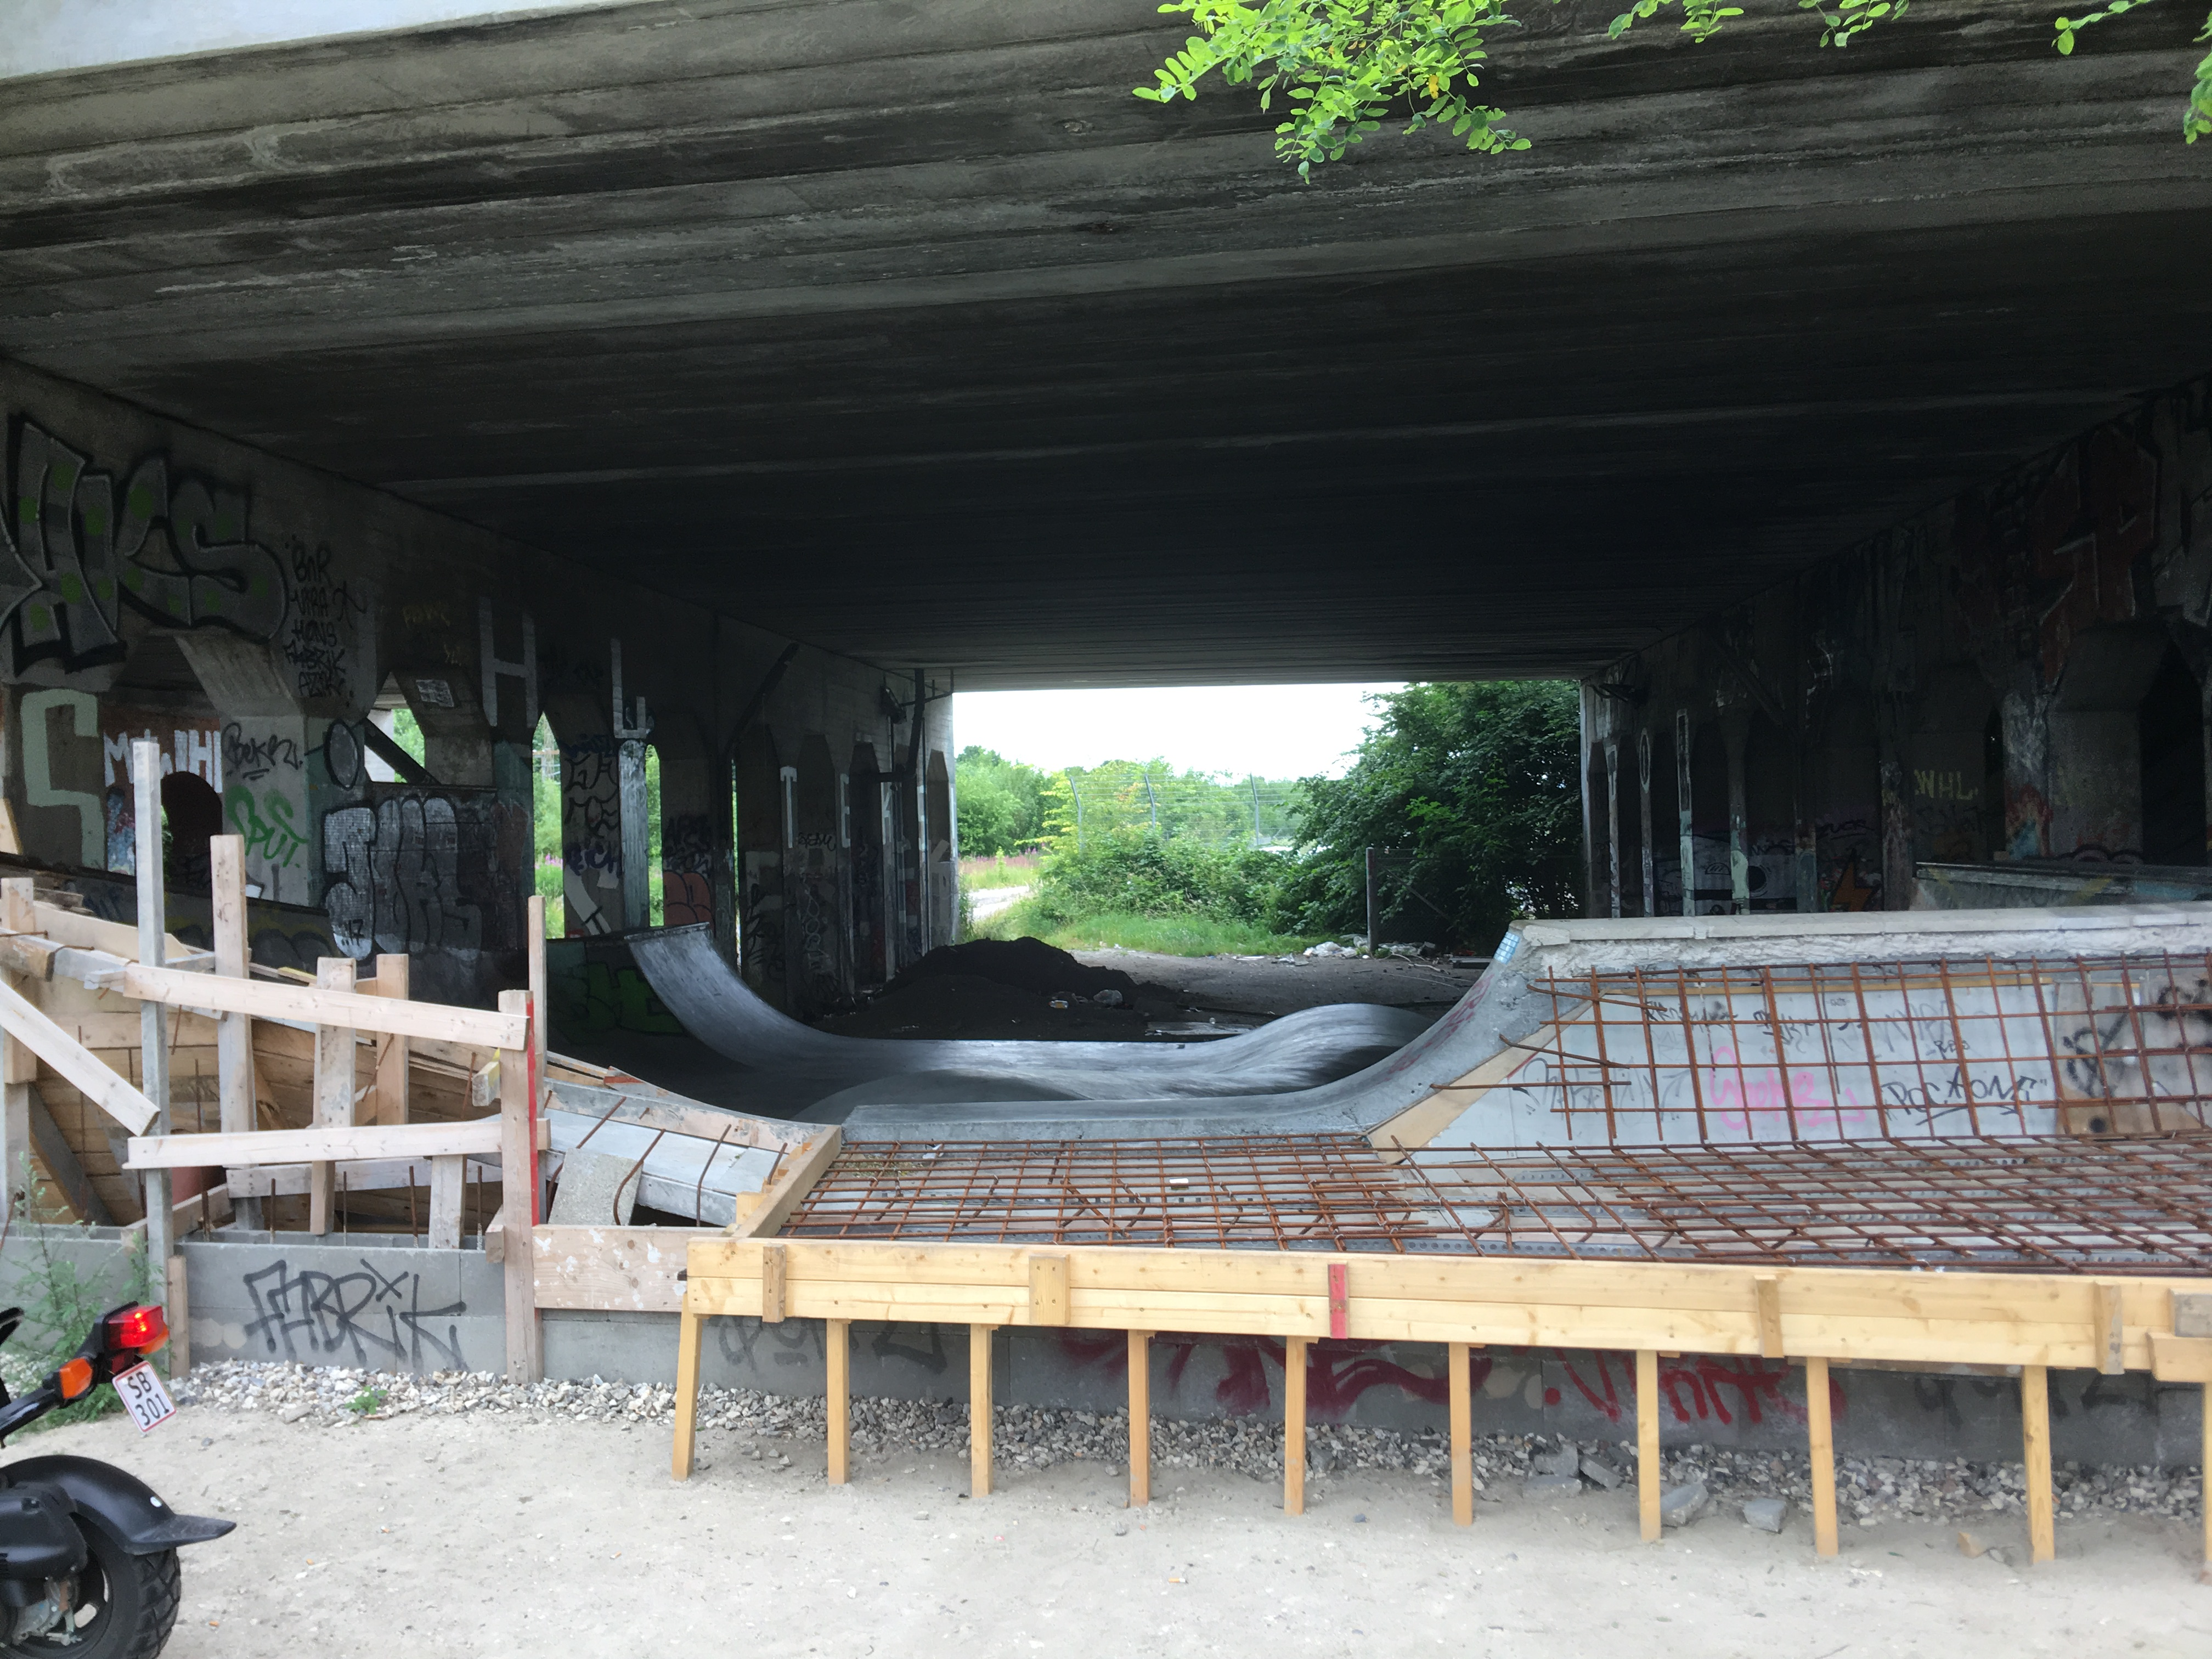 Please go ahead and support under da bridge spot.